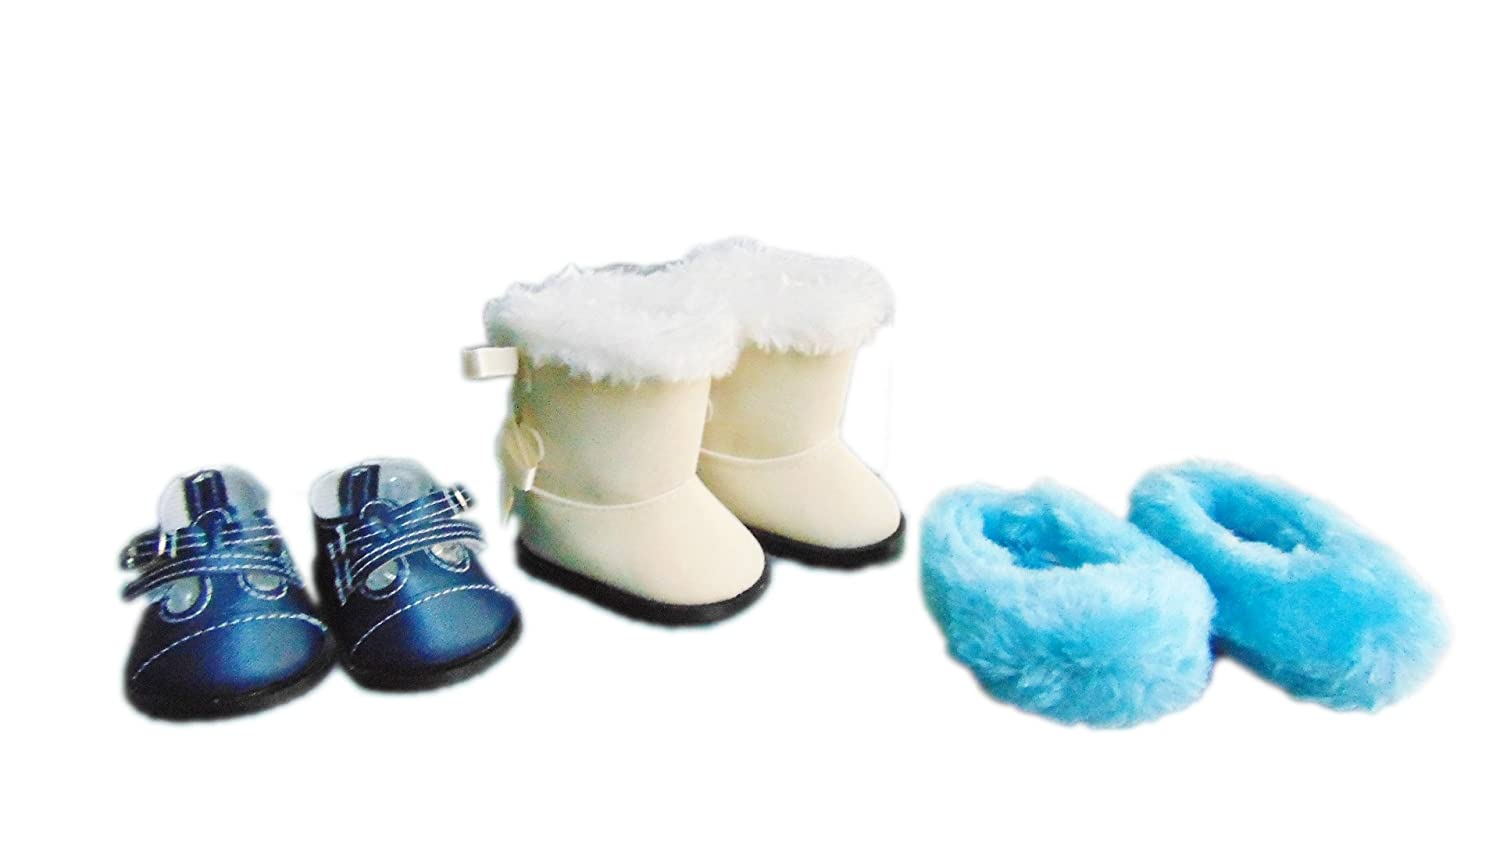 963958fea39 Amazon.com  Brittany s My Value Pack Shoes Compatible with American Girl  Dolls- Blue Buckle Shoes-Ivory Bow Boots- Blue Fuzzy Slippers  Toys   Games